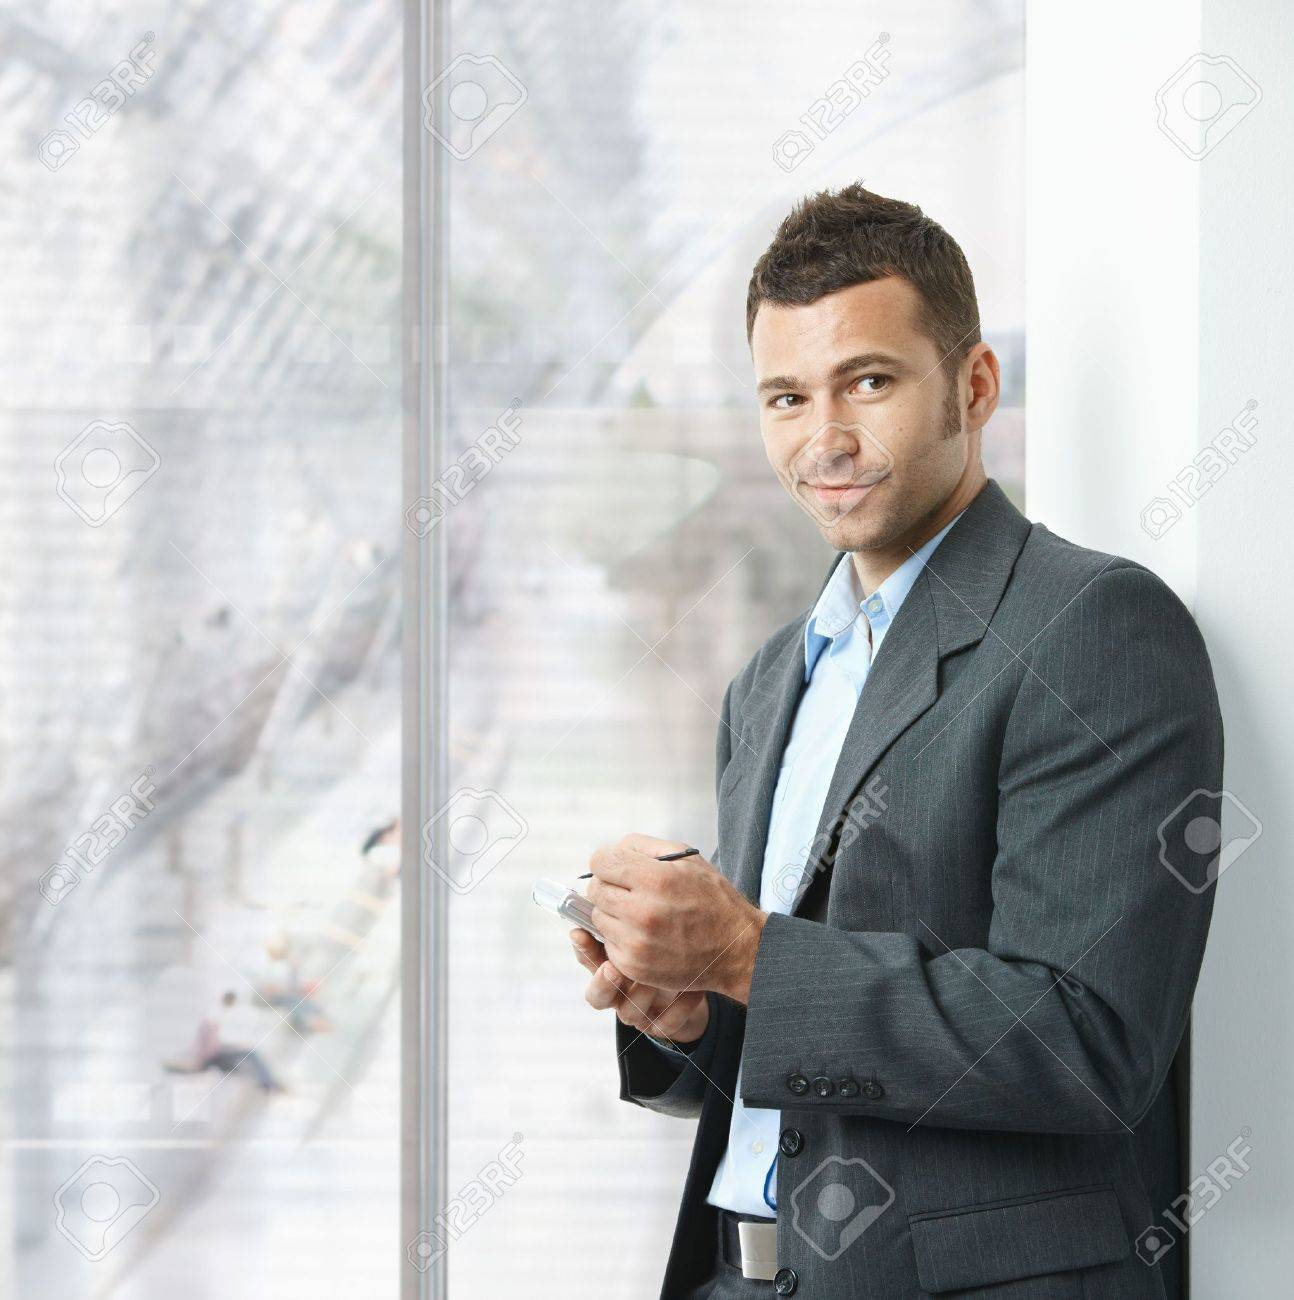 Young businessman standing in office lobby, using smartphone, smiling. Stock Photo - 5758822